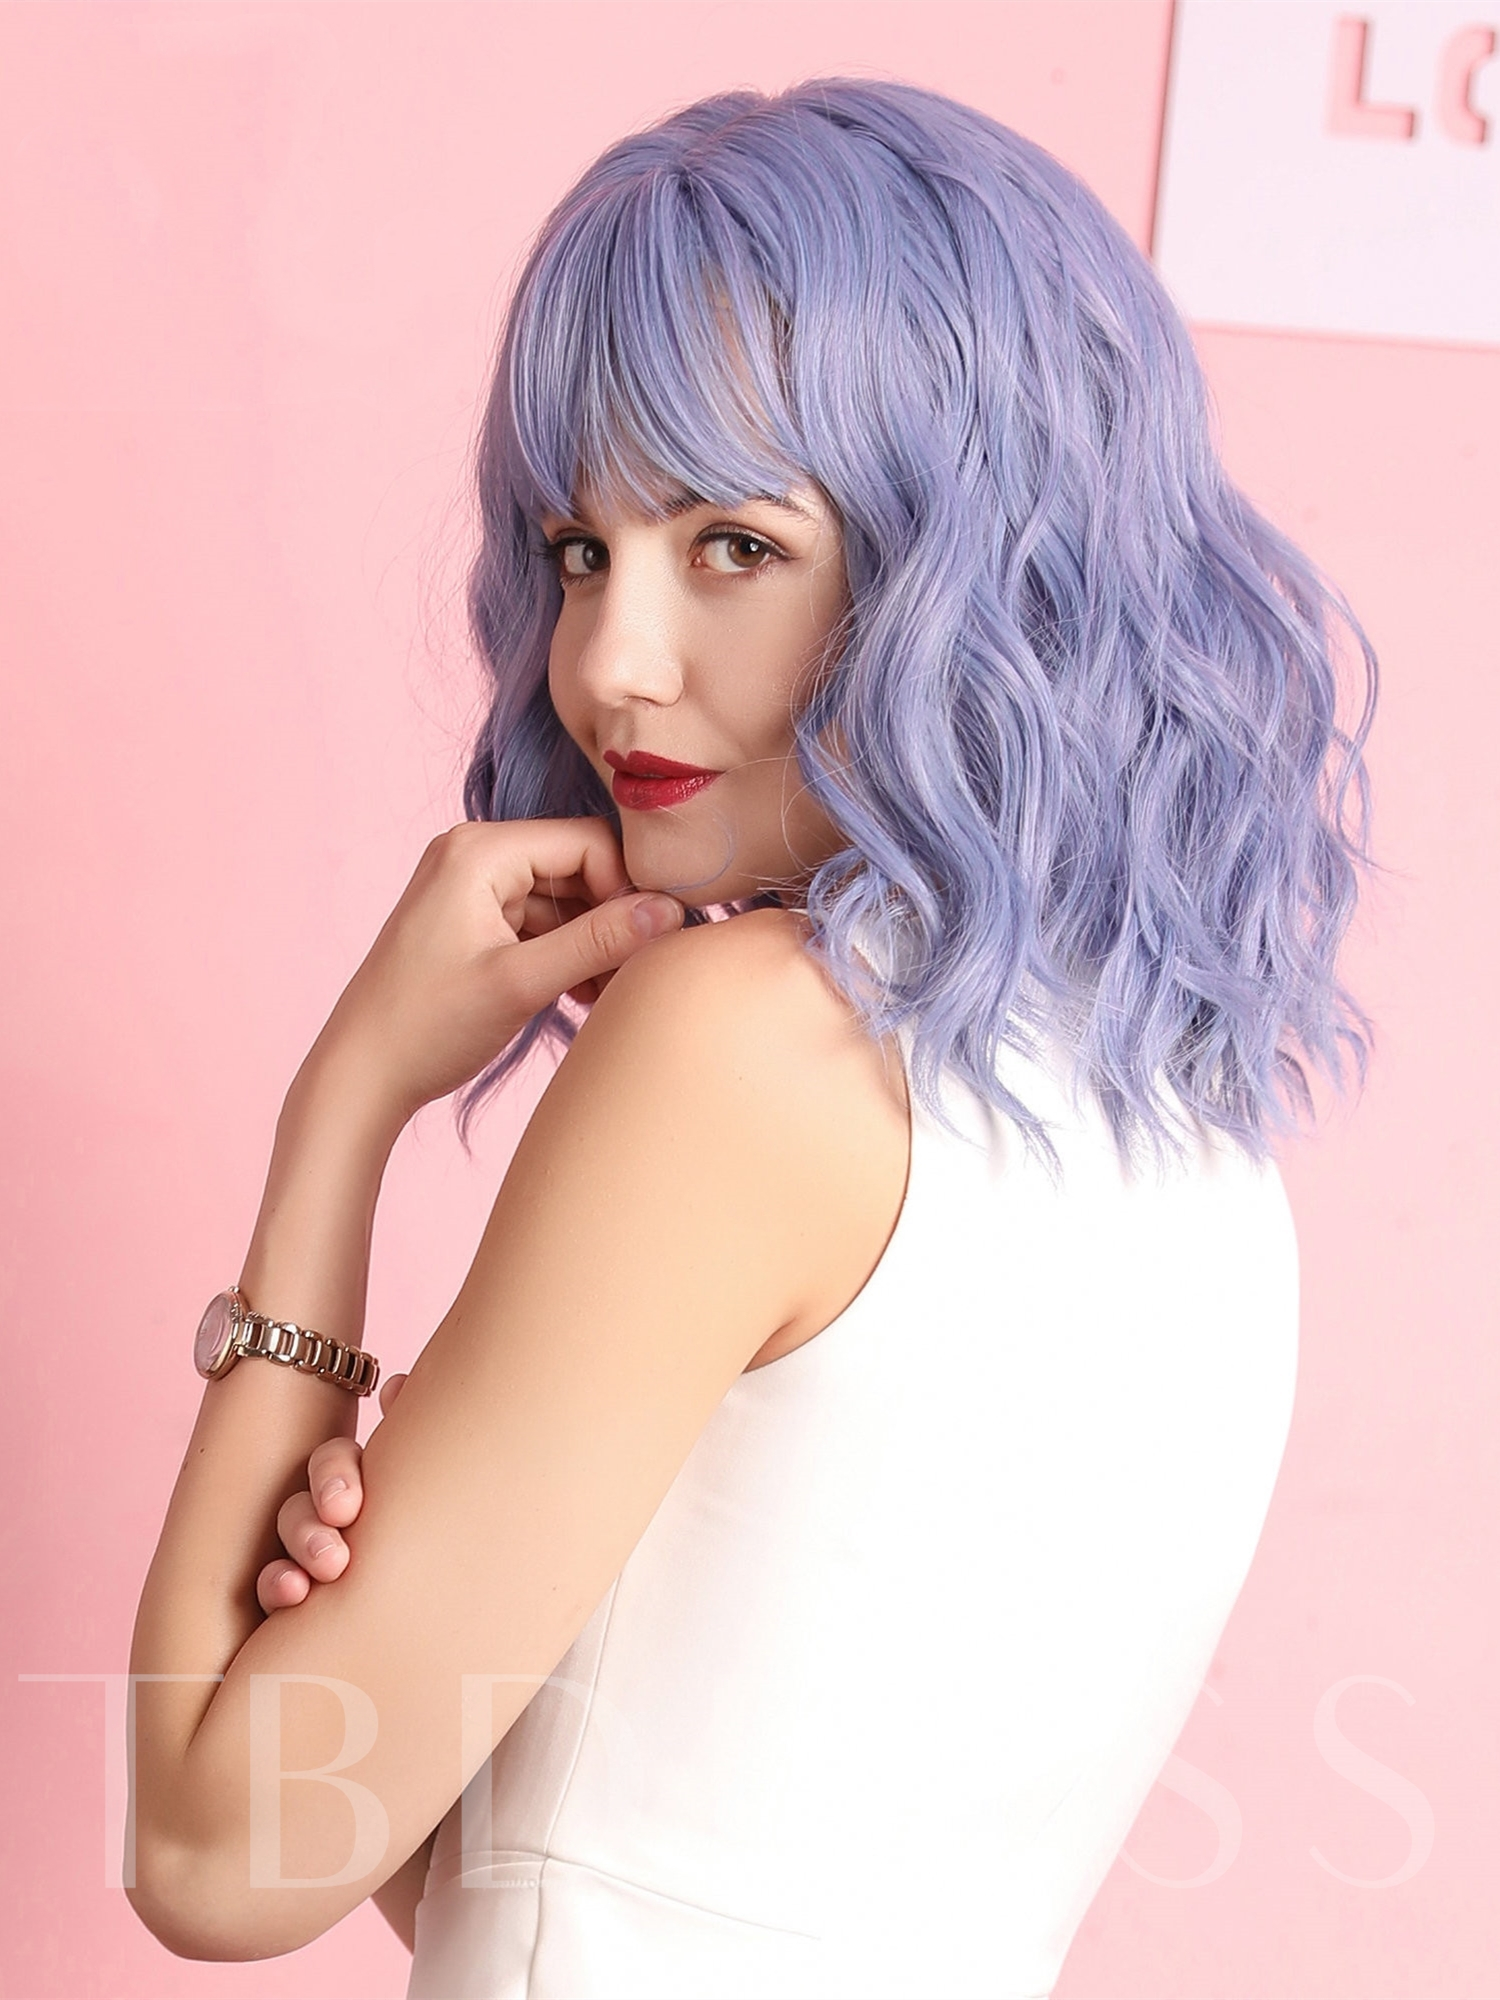 Halloween Women's Cosplay Costume Party Synthetic Hair Wigs 130% Density Wavy Capless Wigs 14Inches